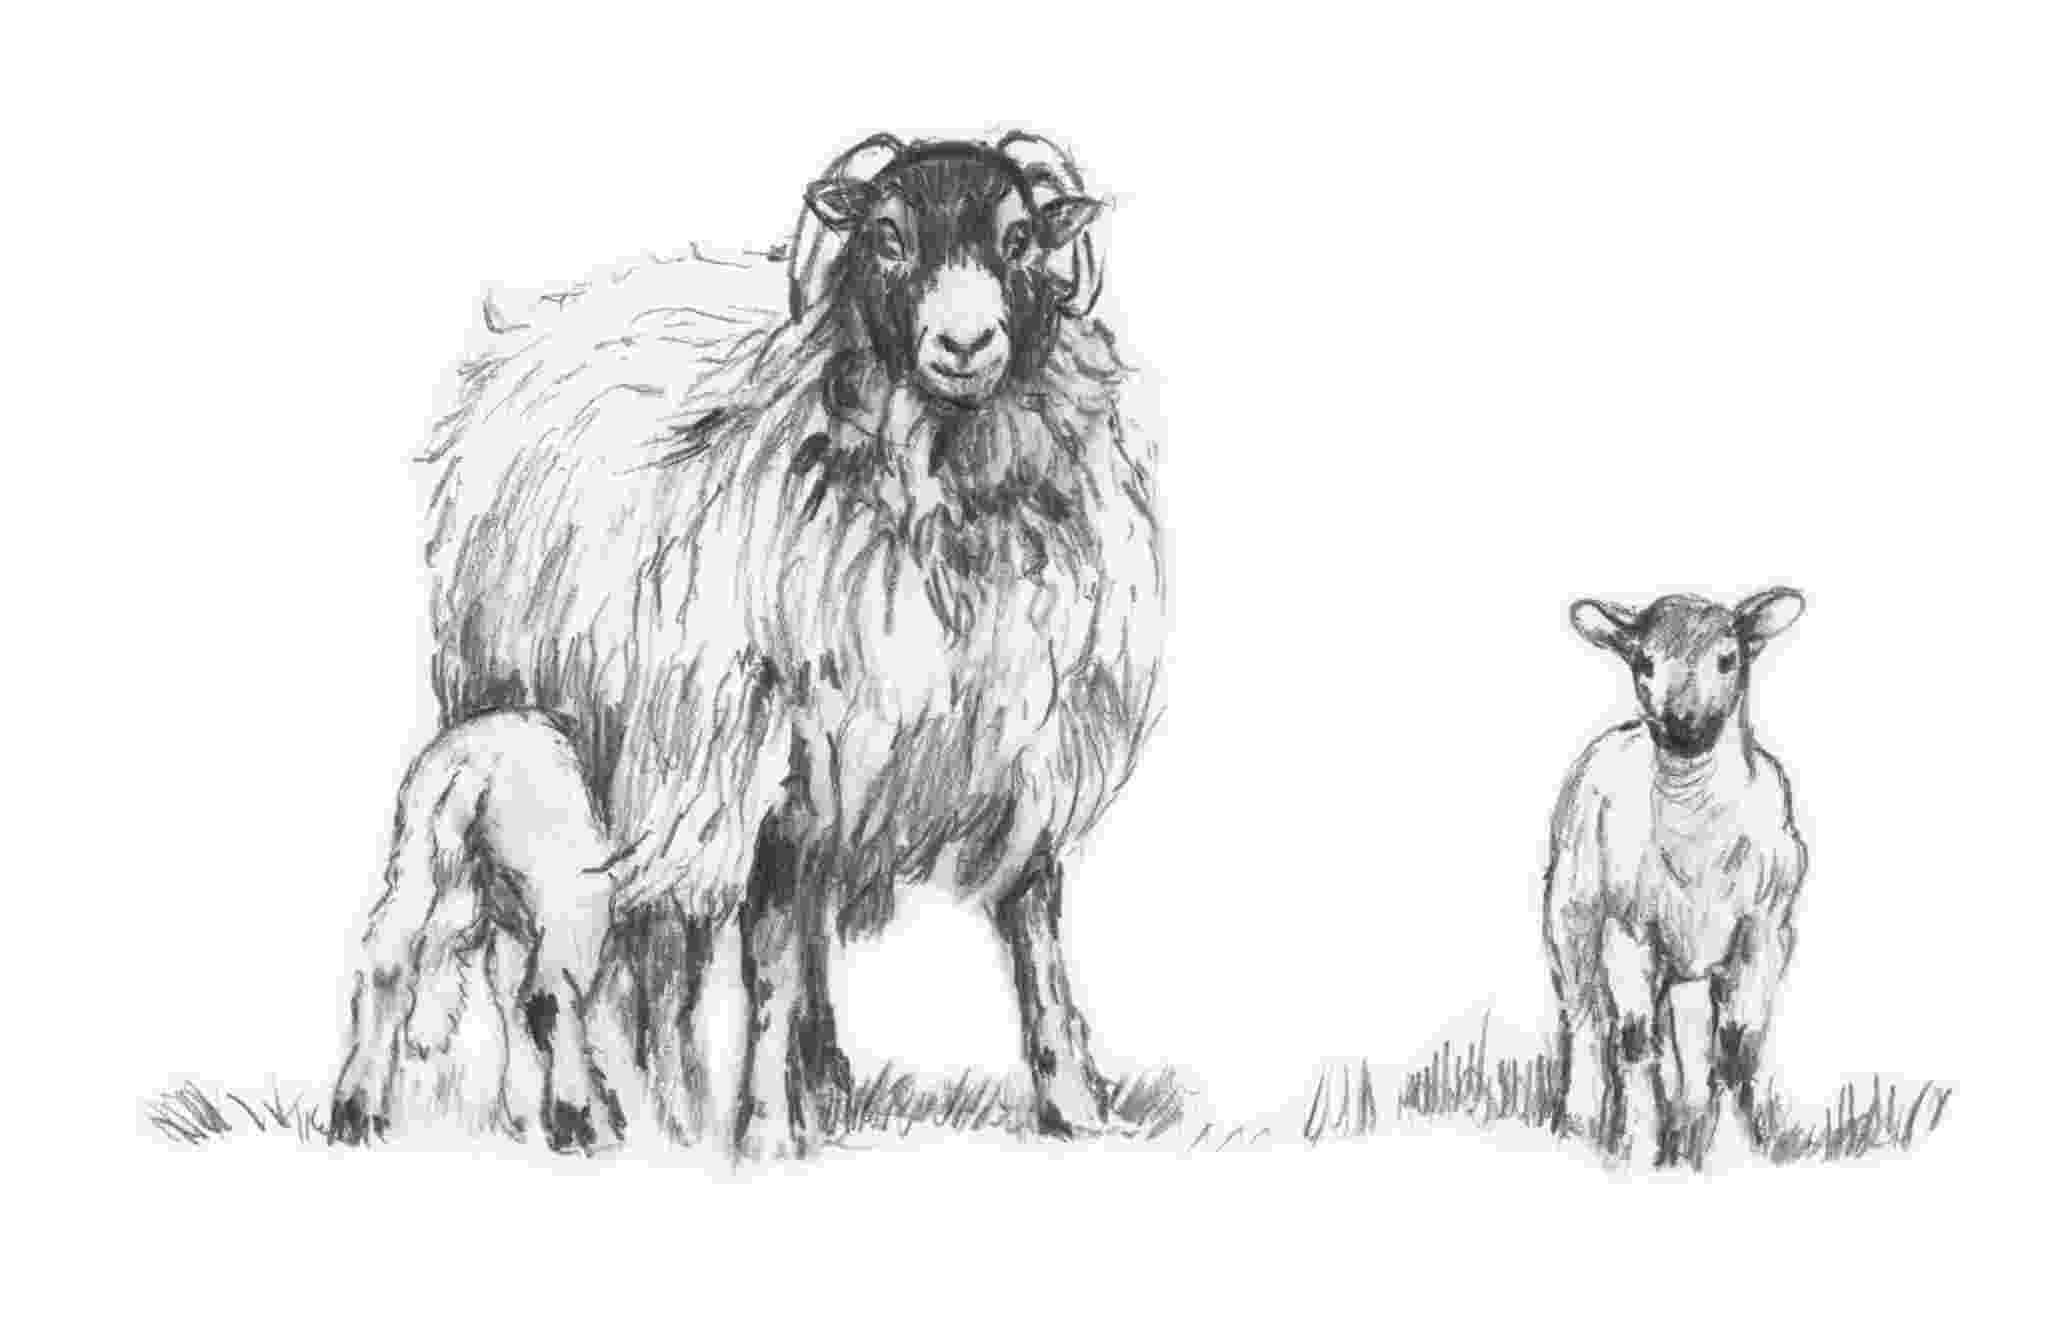 sketch of sheep contact diana rosemary lodge painter of gypsies horses of sheep sketch